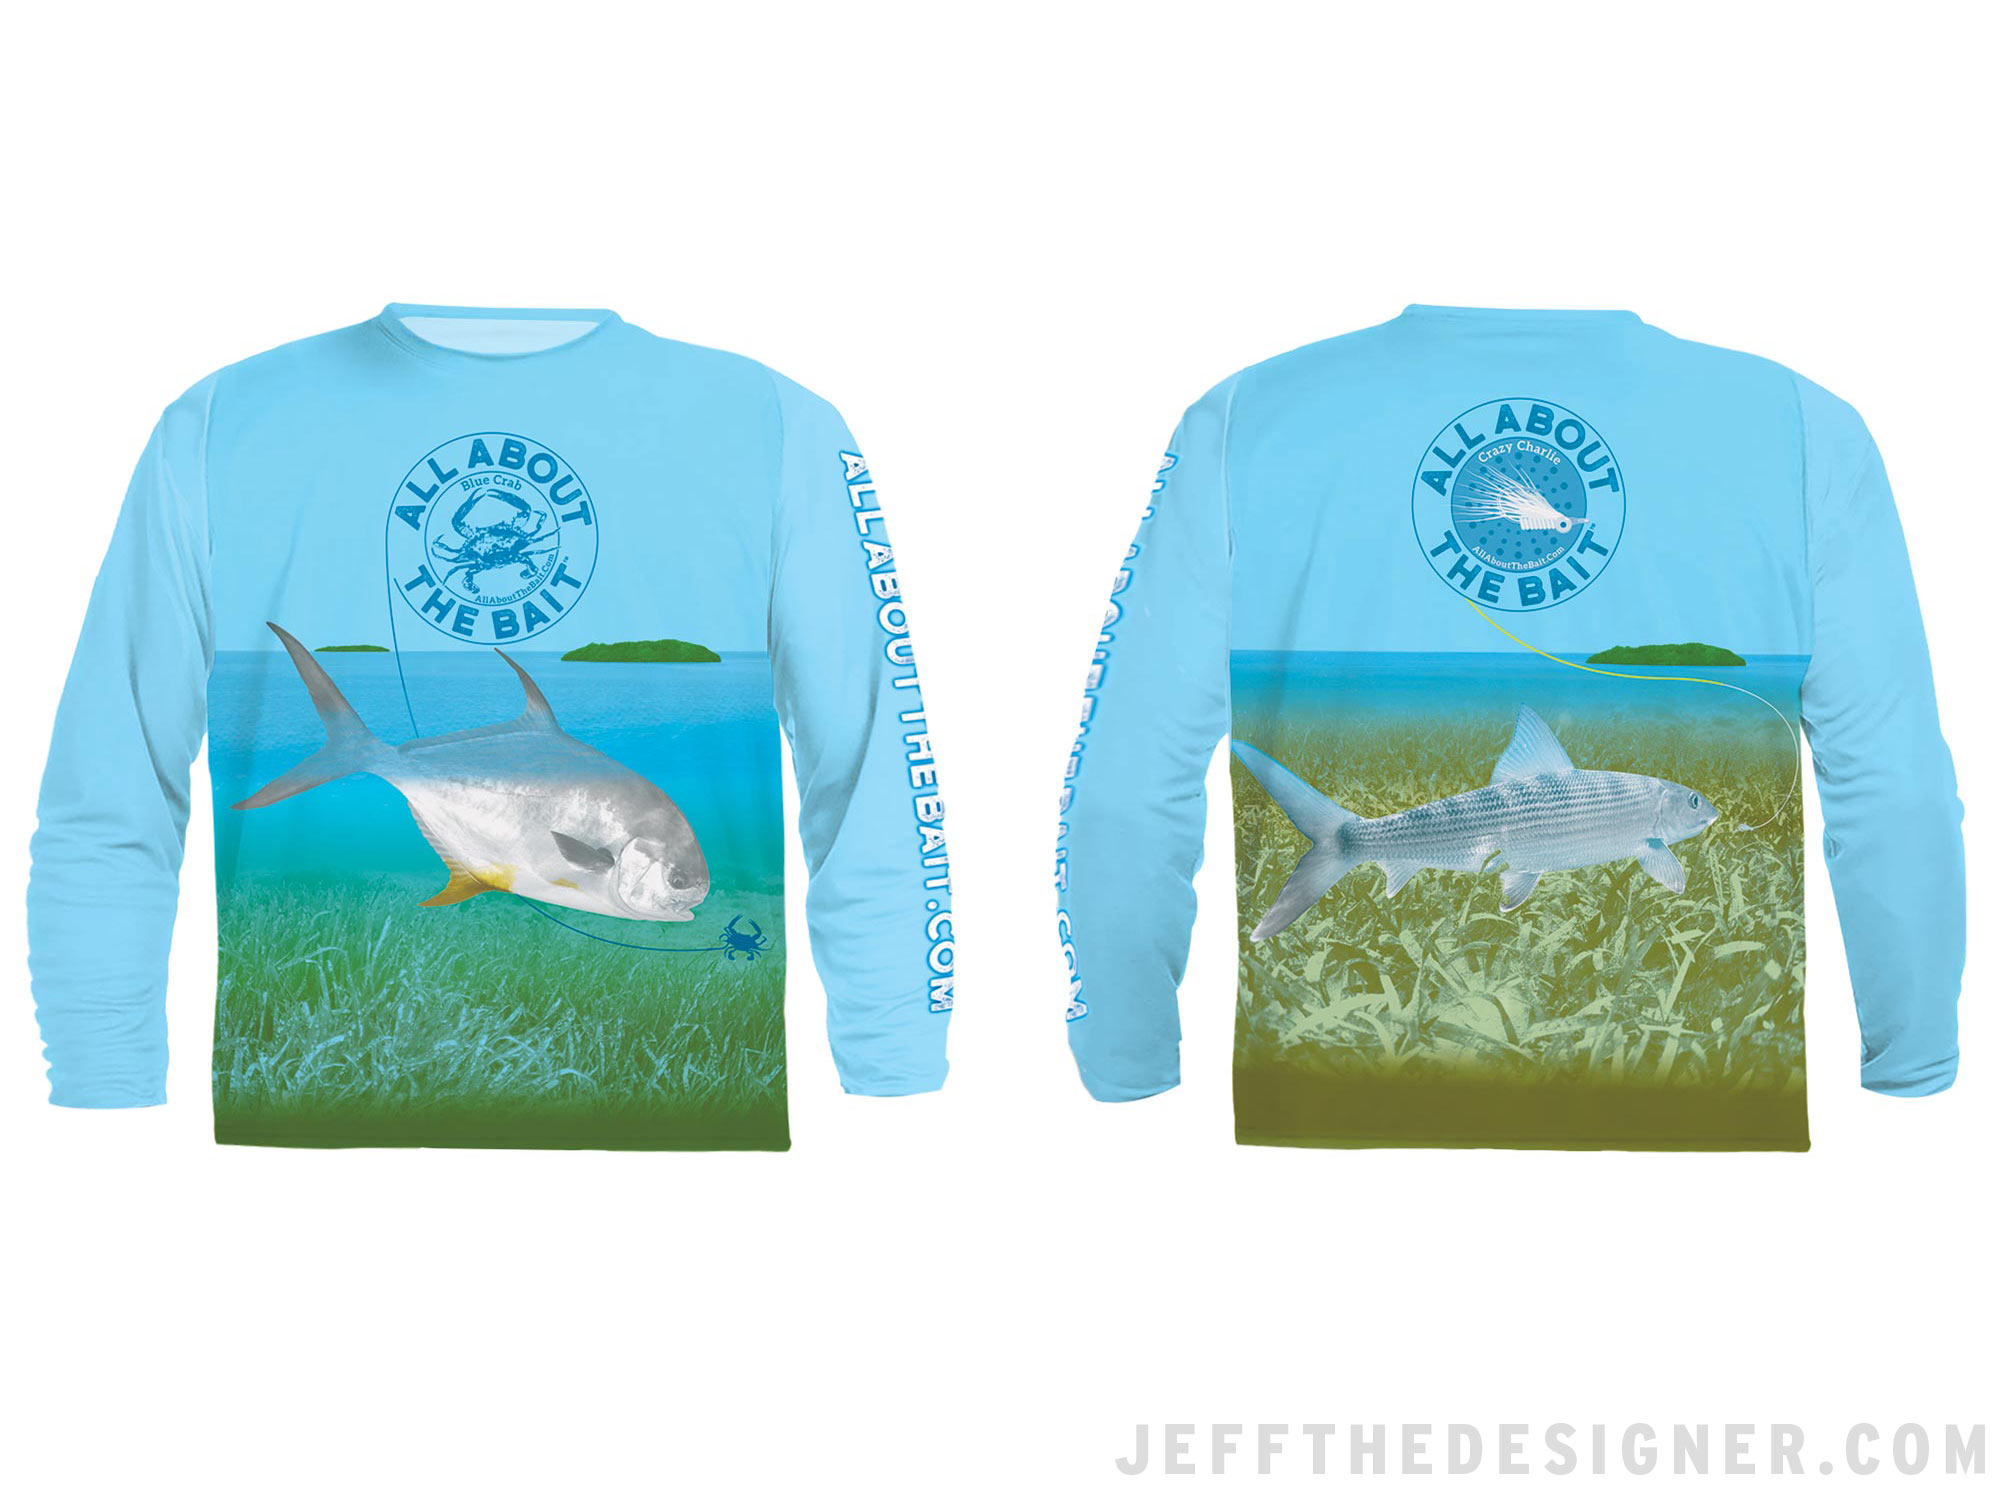 Fishing Shirt Design - Permit and Bonefish on the Florida Keys Flats